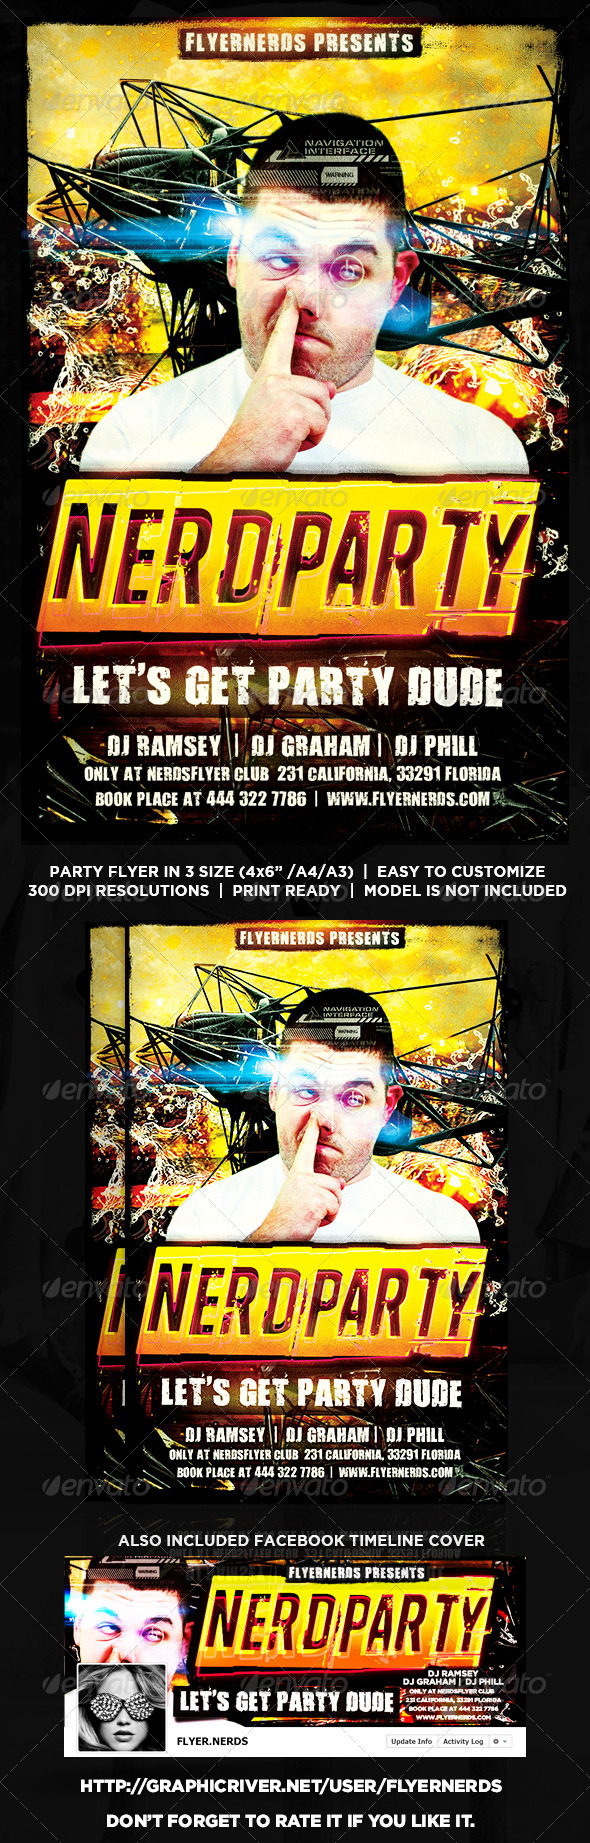 GraphicRiver Nerd Party Flyer 8529686